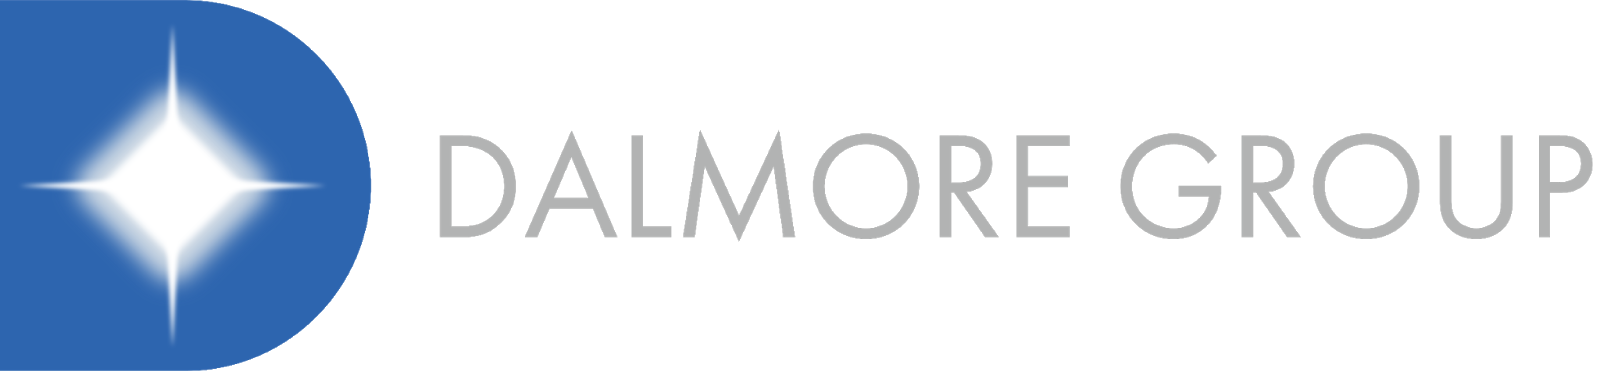 Dalmore Group Teams with Global Wine Marketplace Vinsent for Direct Reg CF Offering